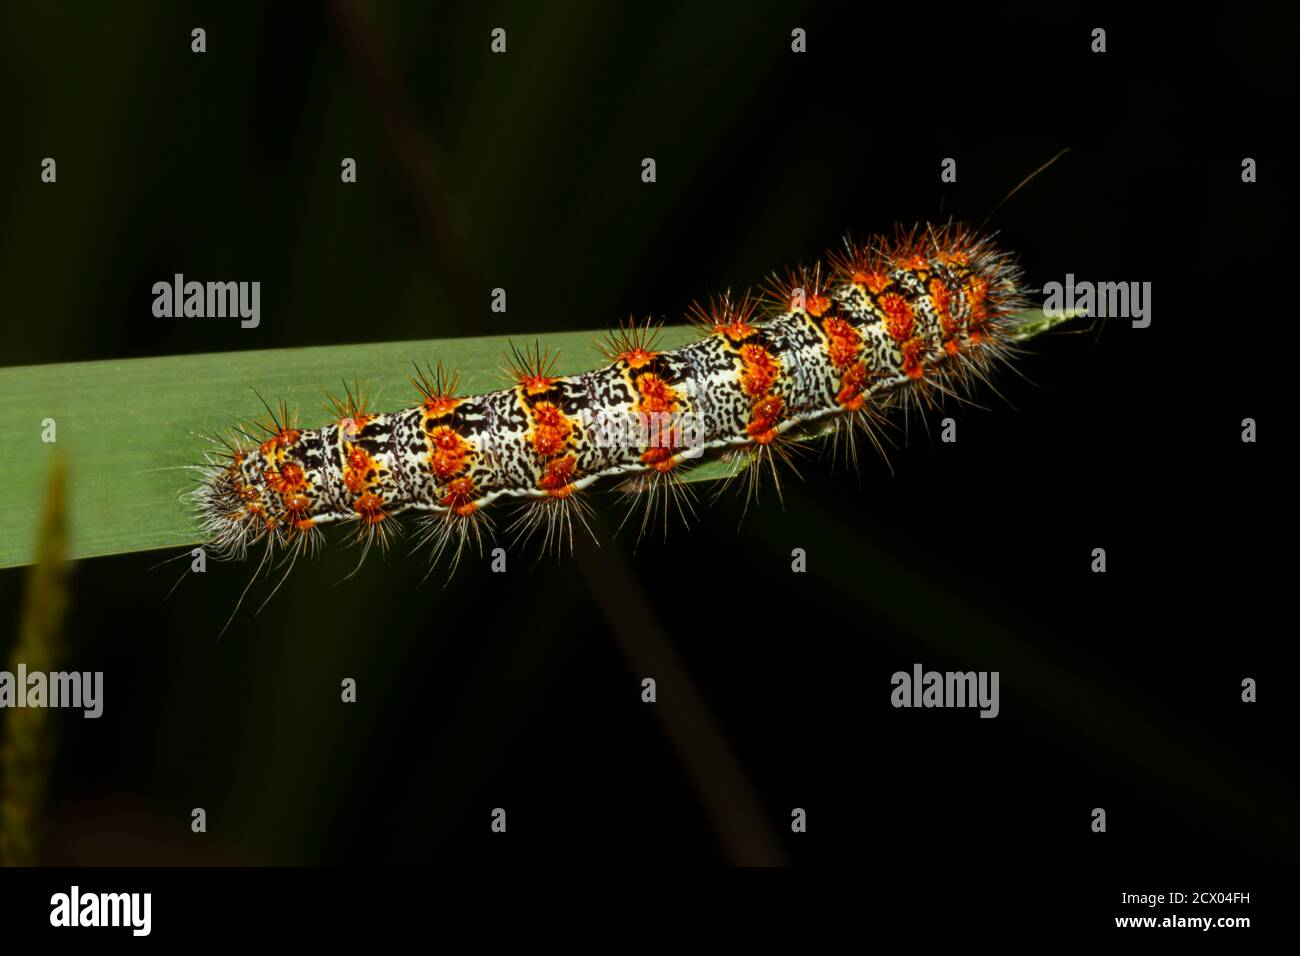 Close up macro lens image of Lymantria dispar dispar (Gypsy moth caterpillar) that has white cylindrical body with red warts and torn like spikes. Thi Stock Photo